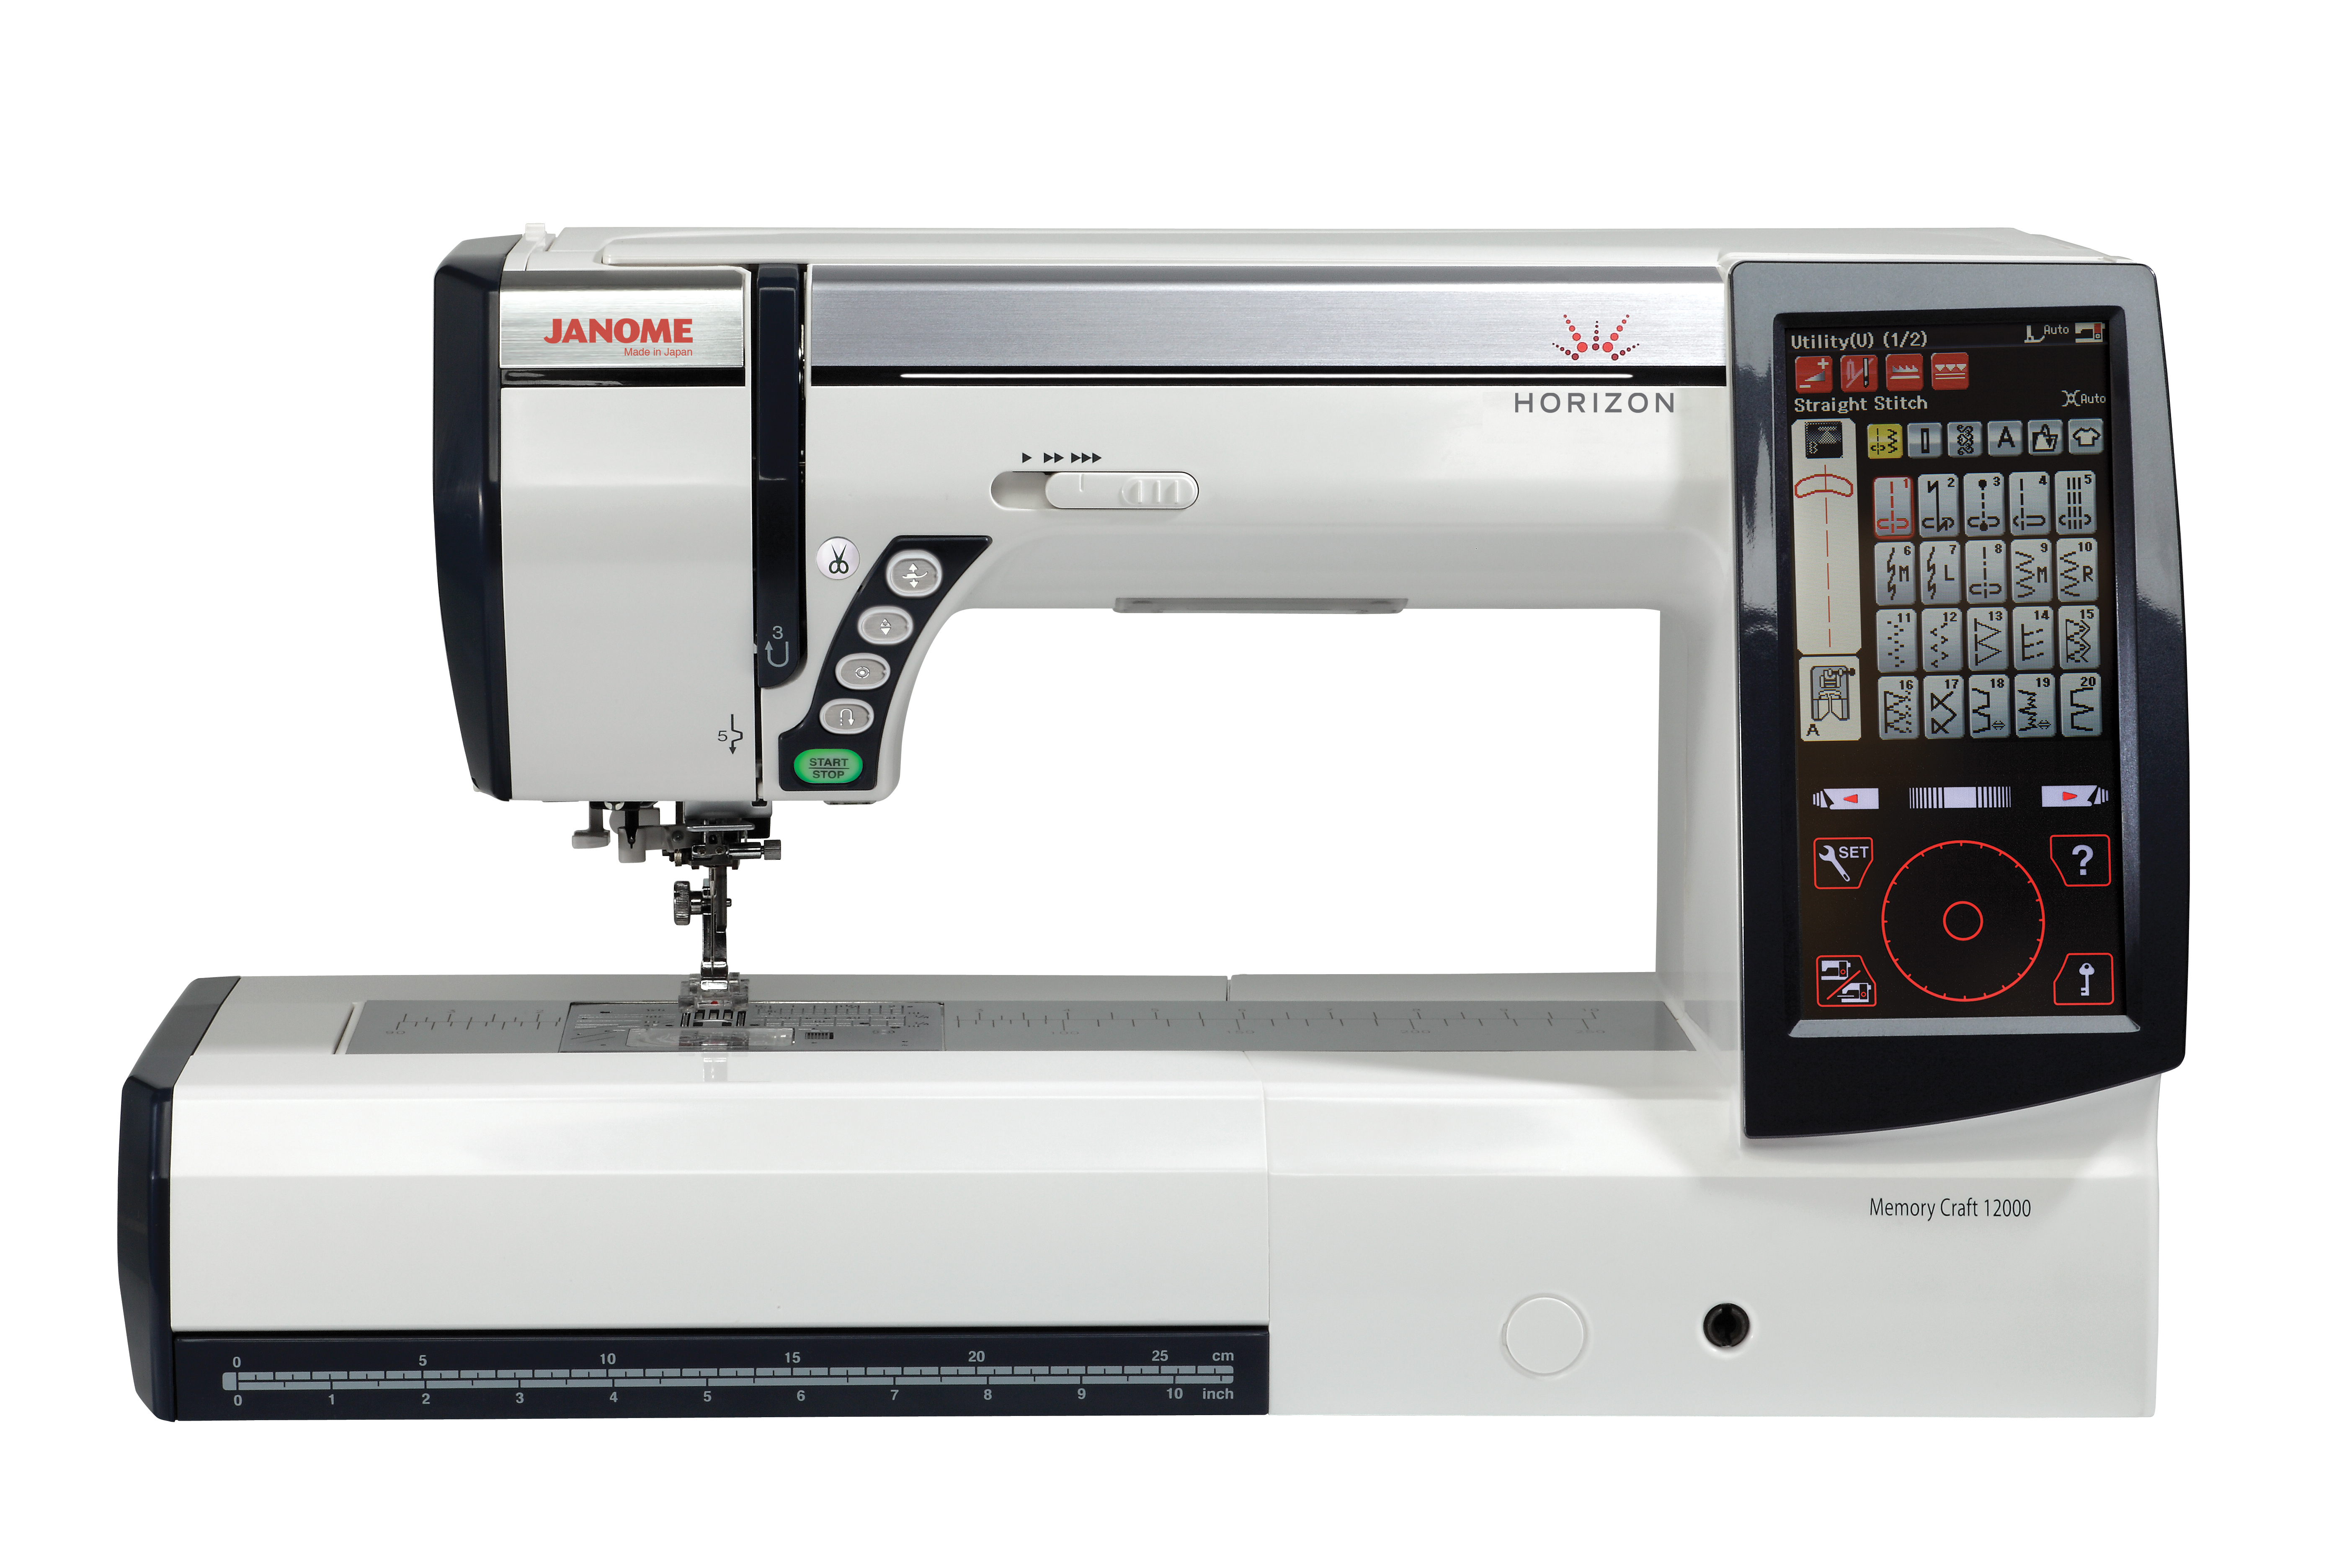 Janome memory craft 9900 - Key Features